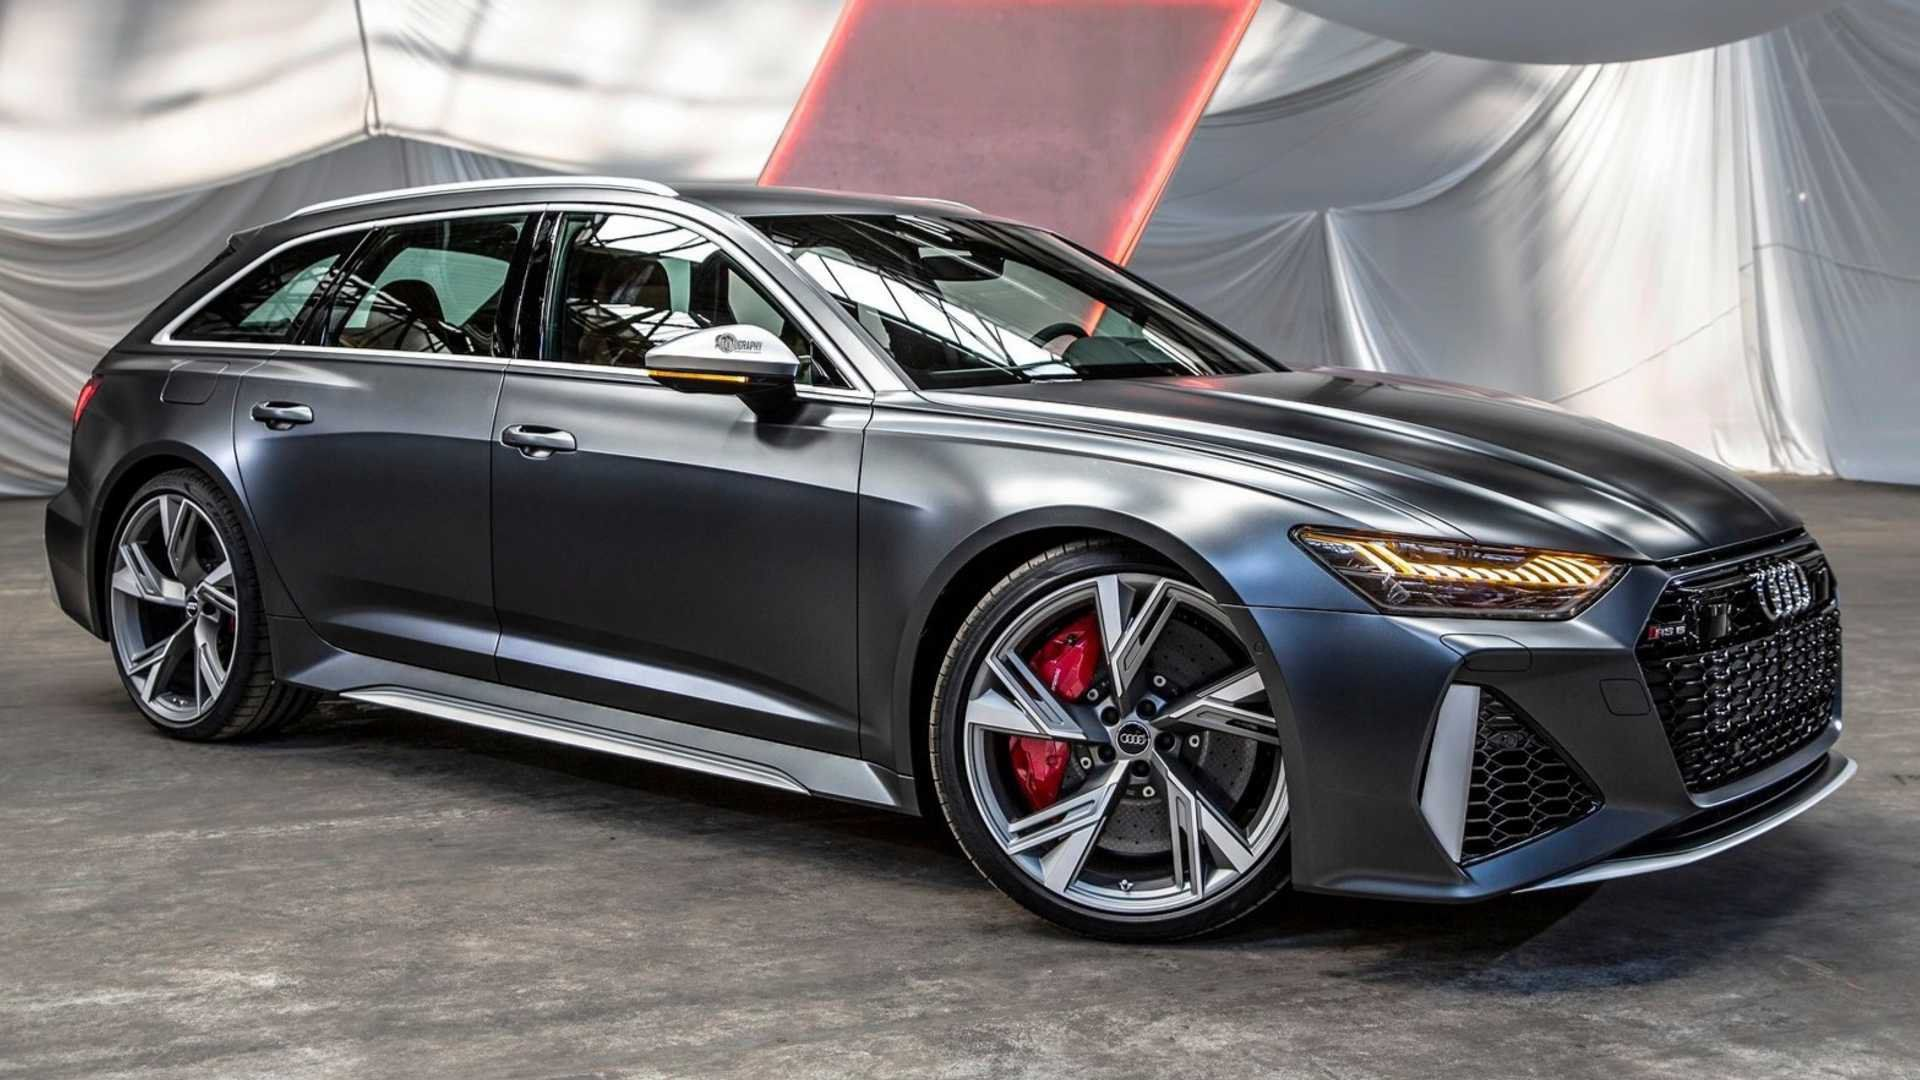 Cars Toppost Audi Rs6 Avant Just Out In 2020 Audi Wagon Audi Rs6 Audi Rs6 Wagon